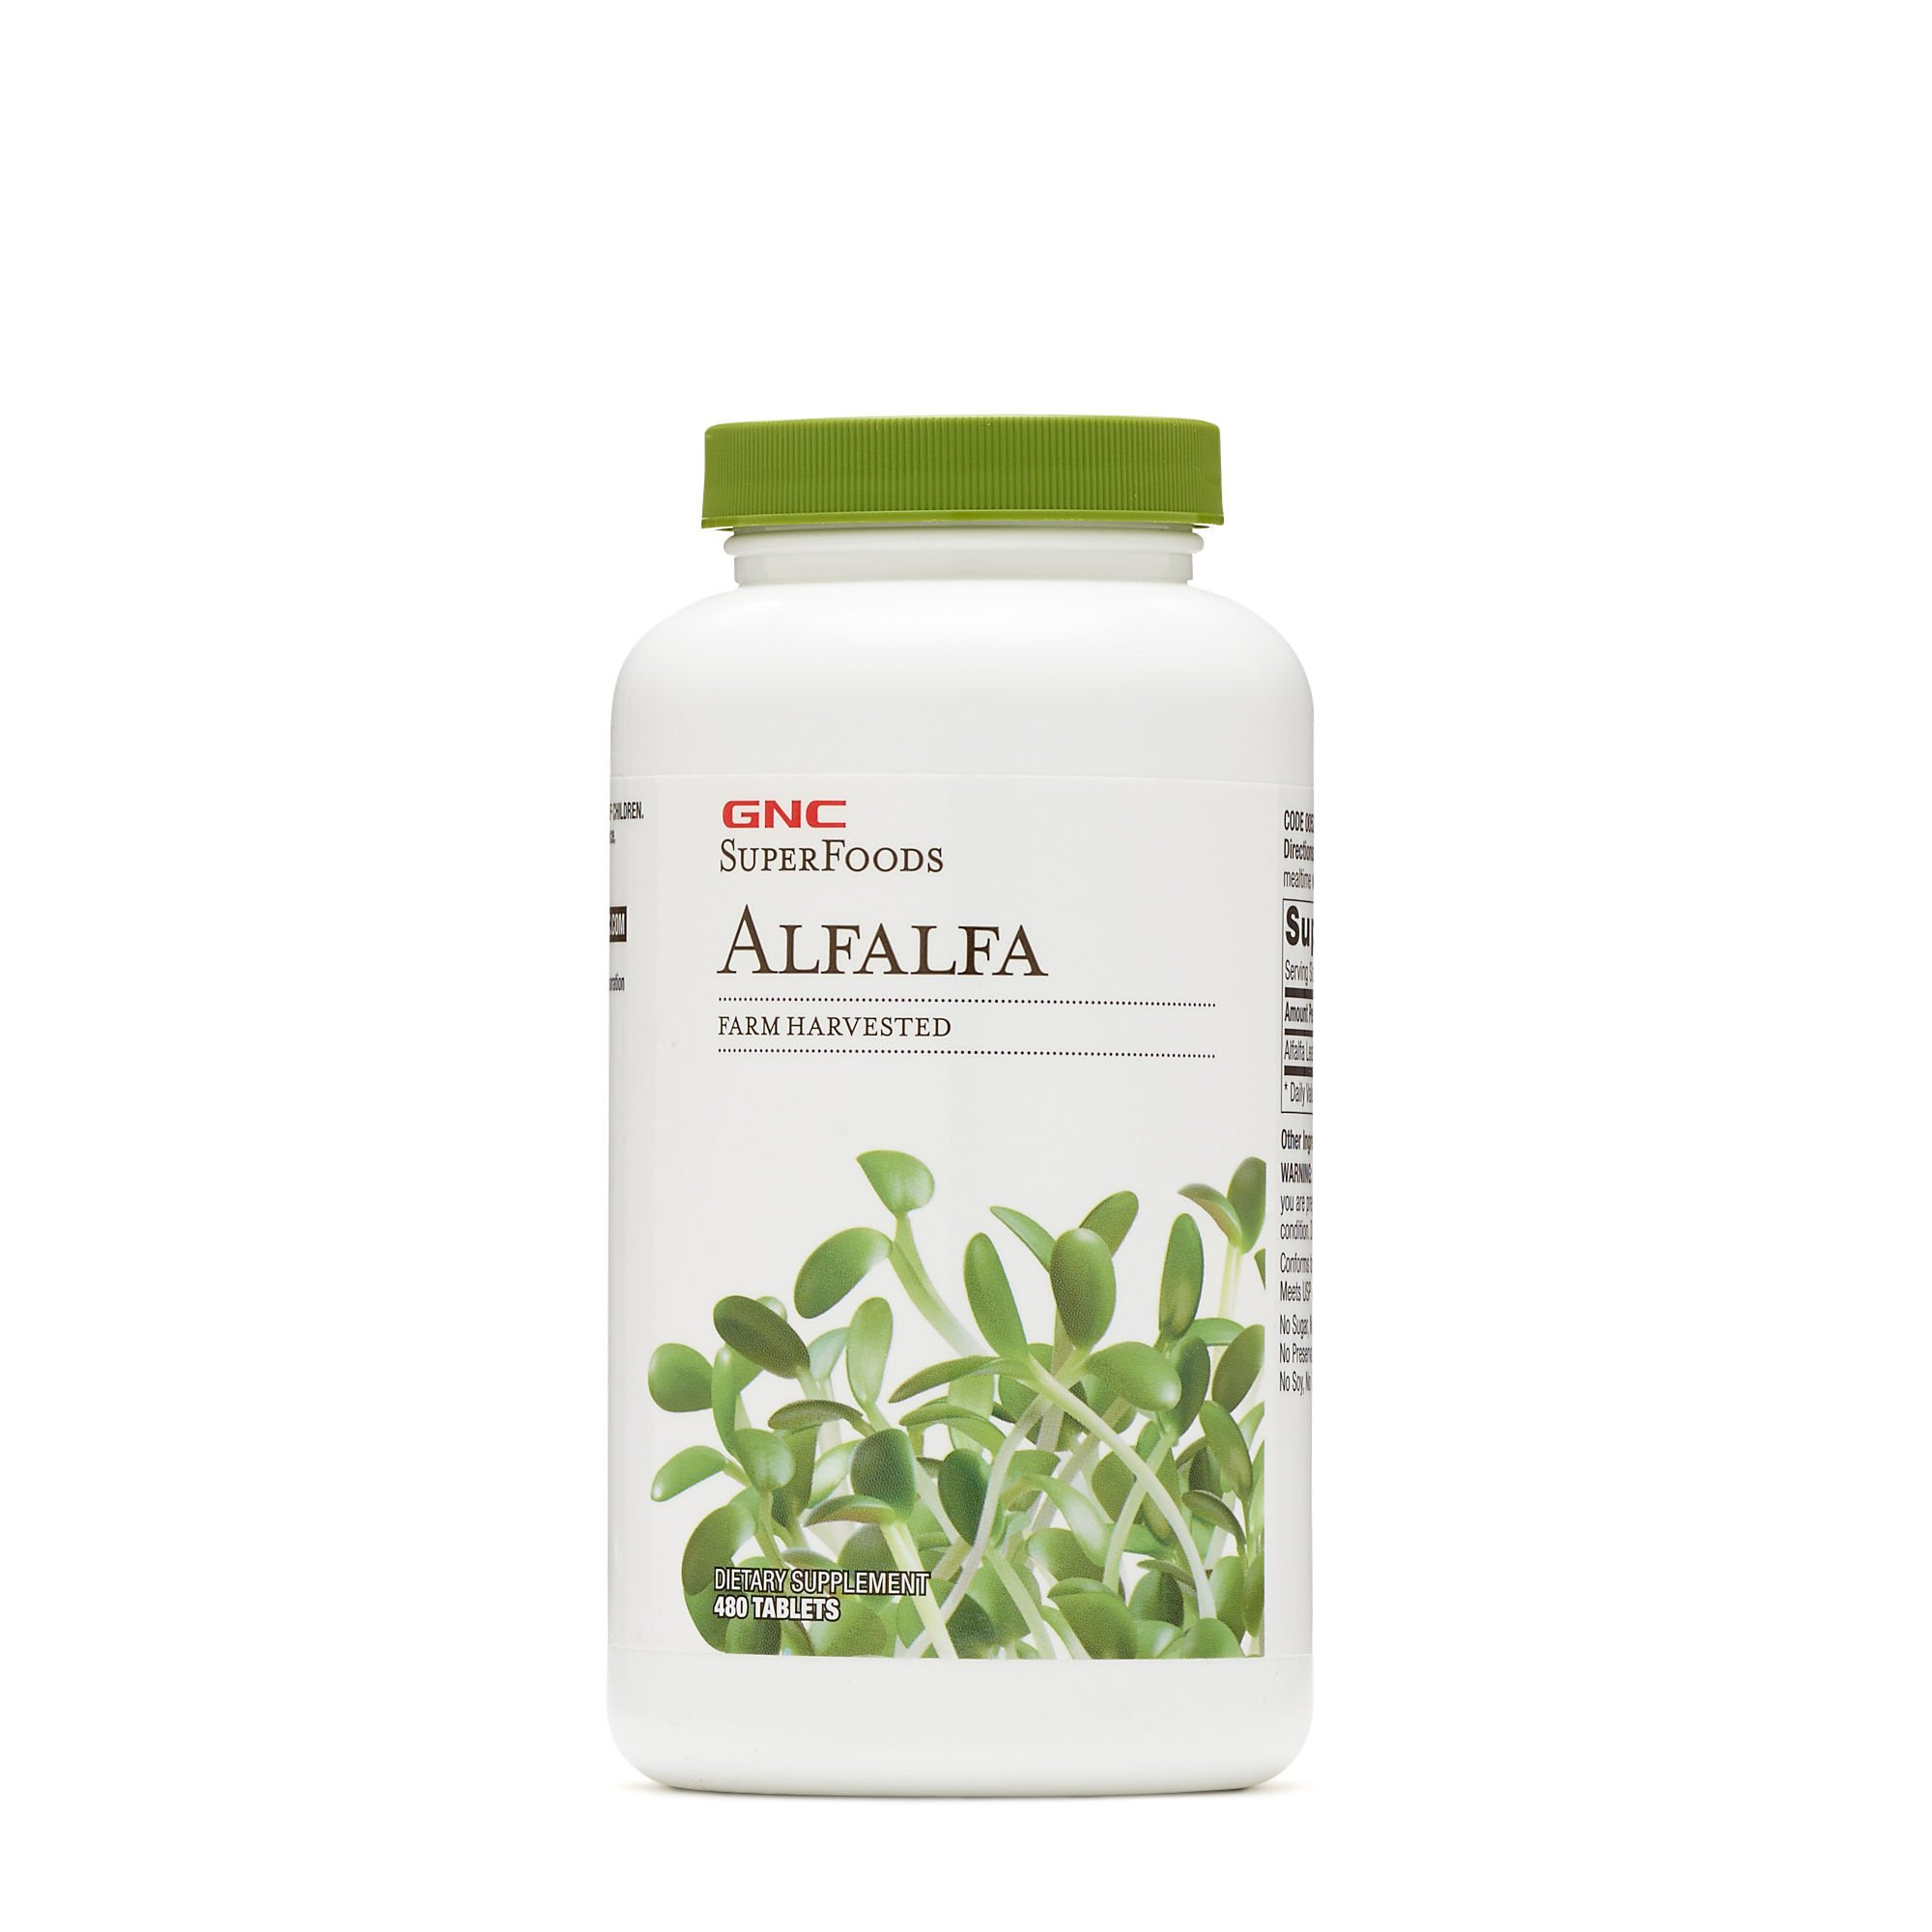 GNC Superfoods Alfalfa, 480 Tablets